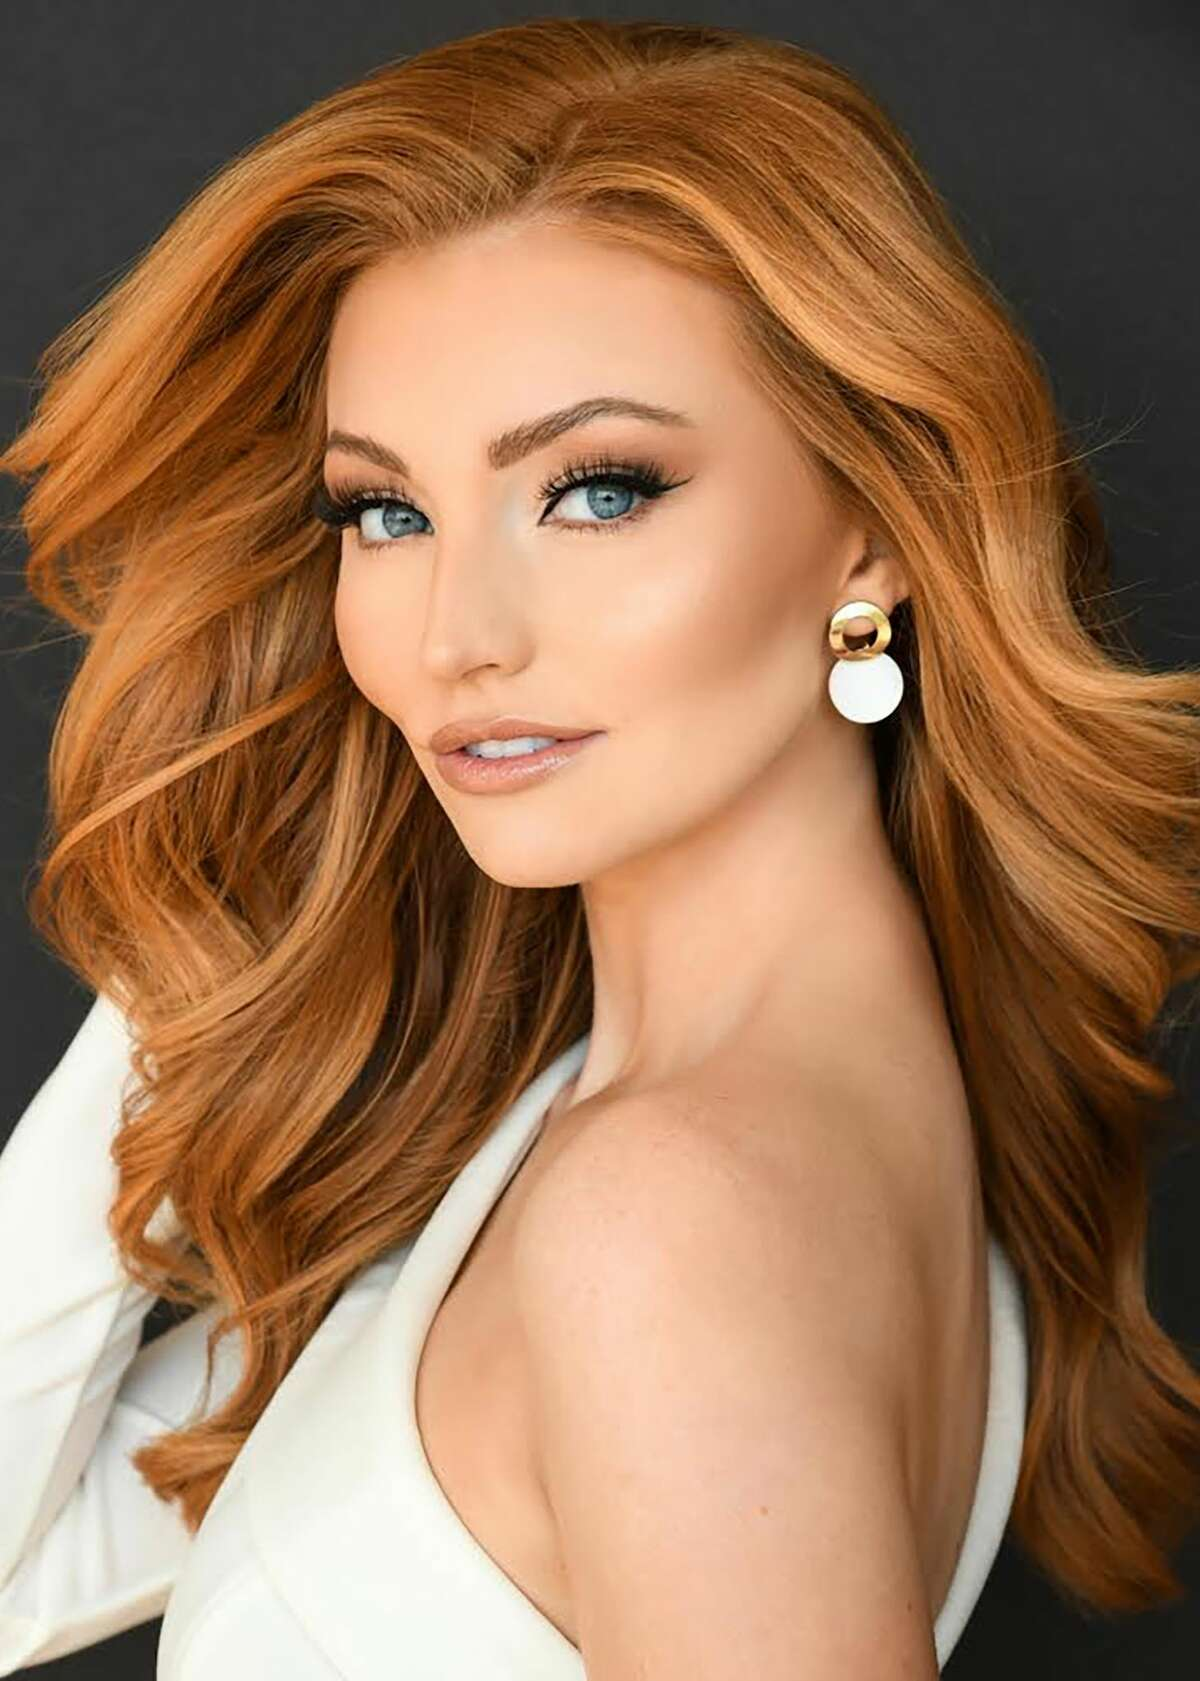 Destiny Fernandisse of League City is in the Miss Texas USA 2021 pageant scheduled for Sept. 3-4. She was a semifinalist in the recent Miss Houston pageant.